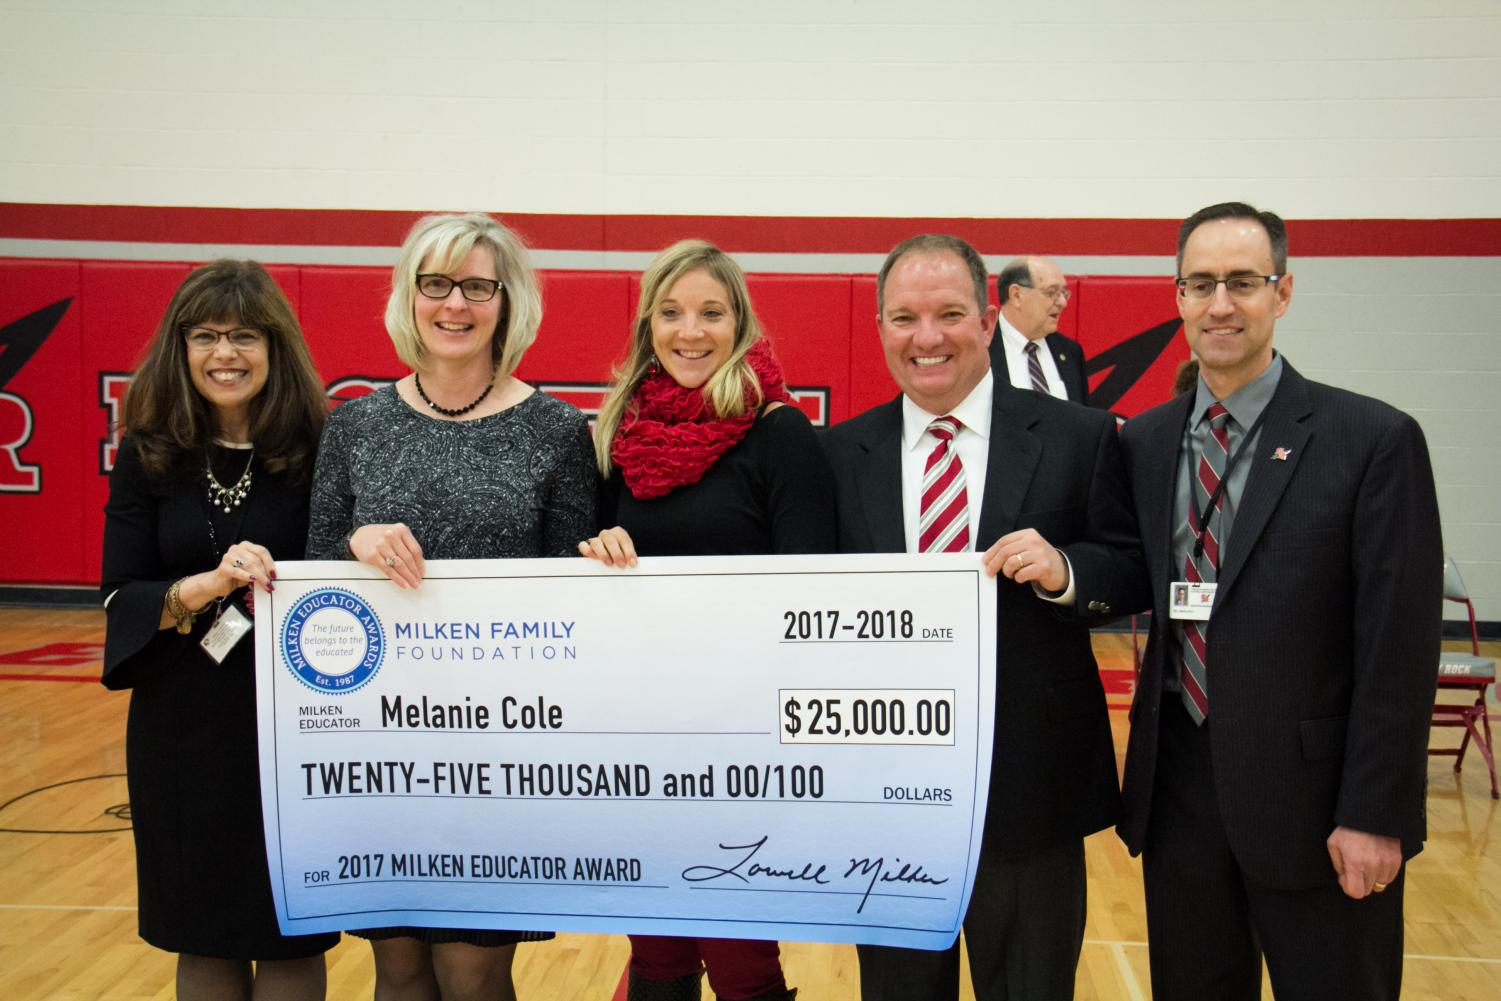 Mrs. Cole accepted the Milken Educator award as administrators Dr. Kardambikis, Mrs. Czubiak, Mr. Hake, and Dr. Angelucci congratulate her.